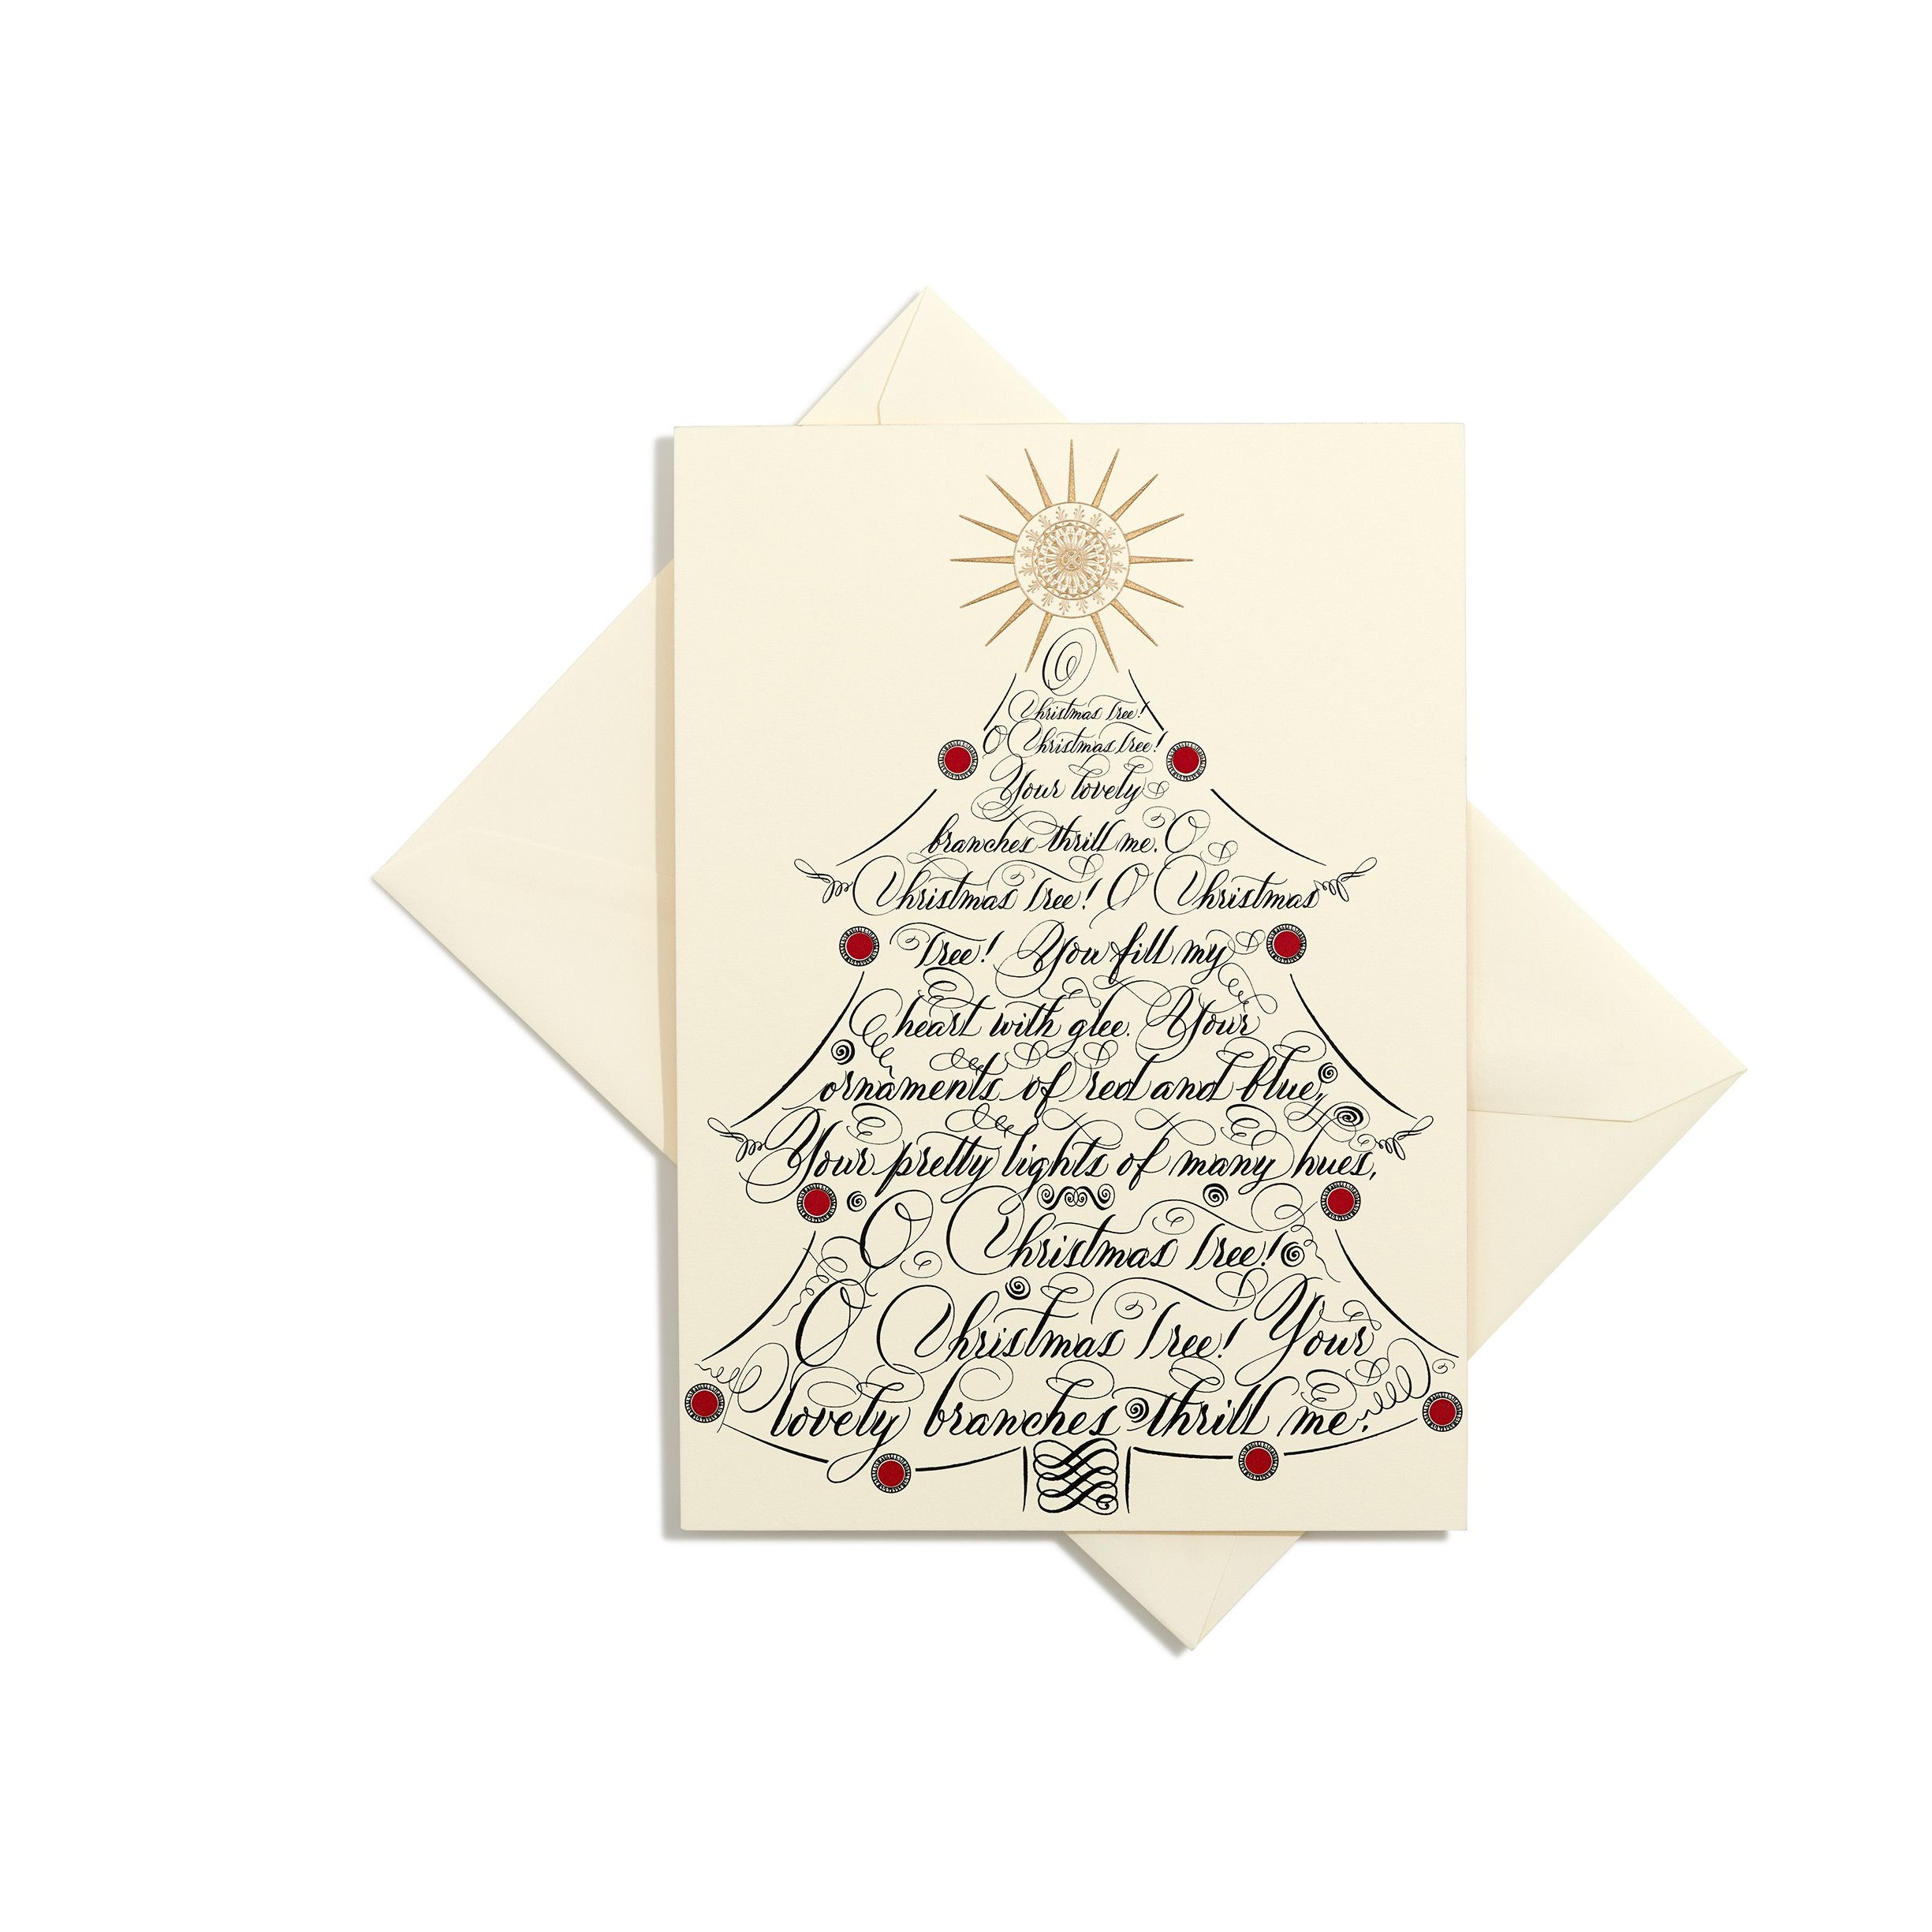 O Christmas Tree Grand Statement Card | Holidays | Pinterest | Cards ...